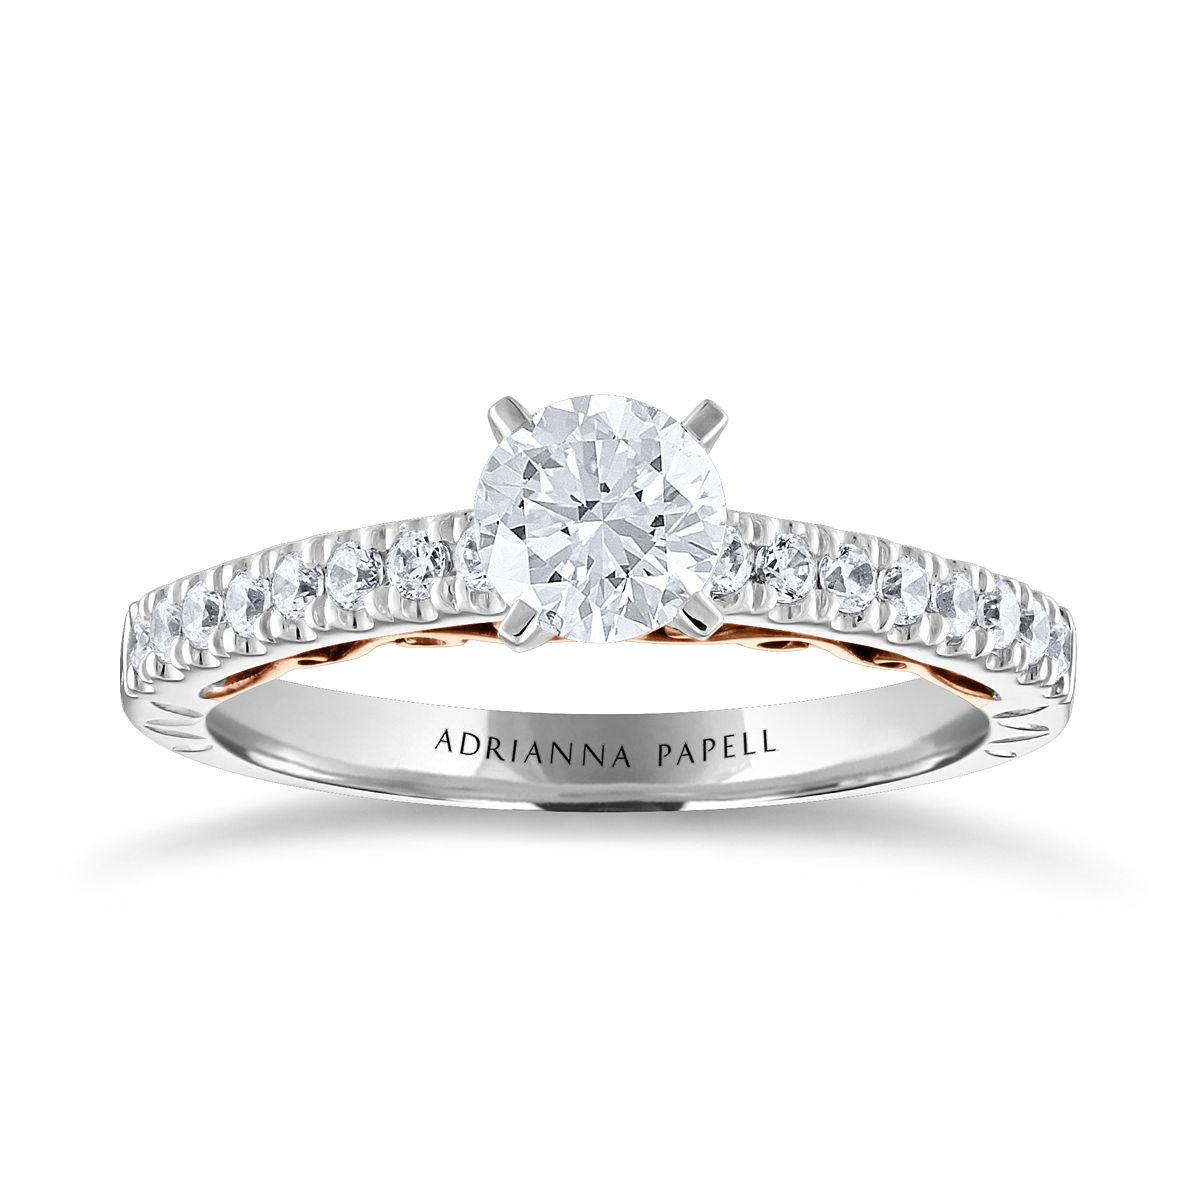 Adrianna Papell 14ct White & Rose Gold 0.75ct Diamond Ring - Product number 2250977